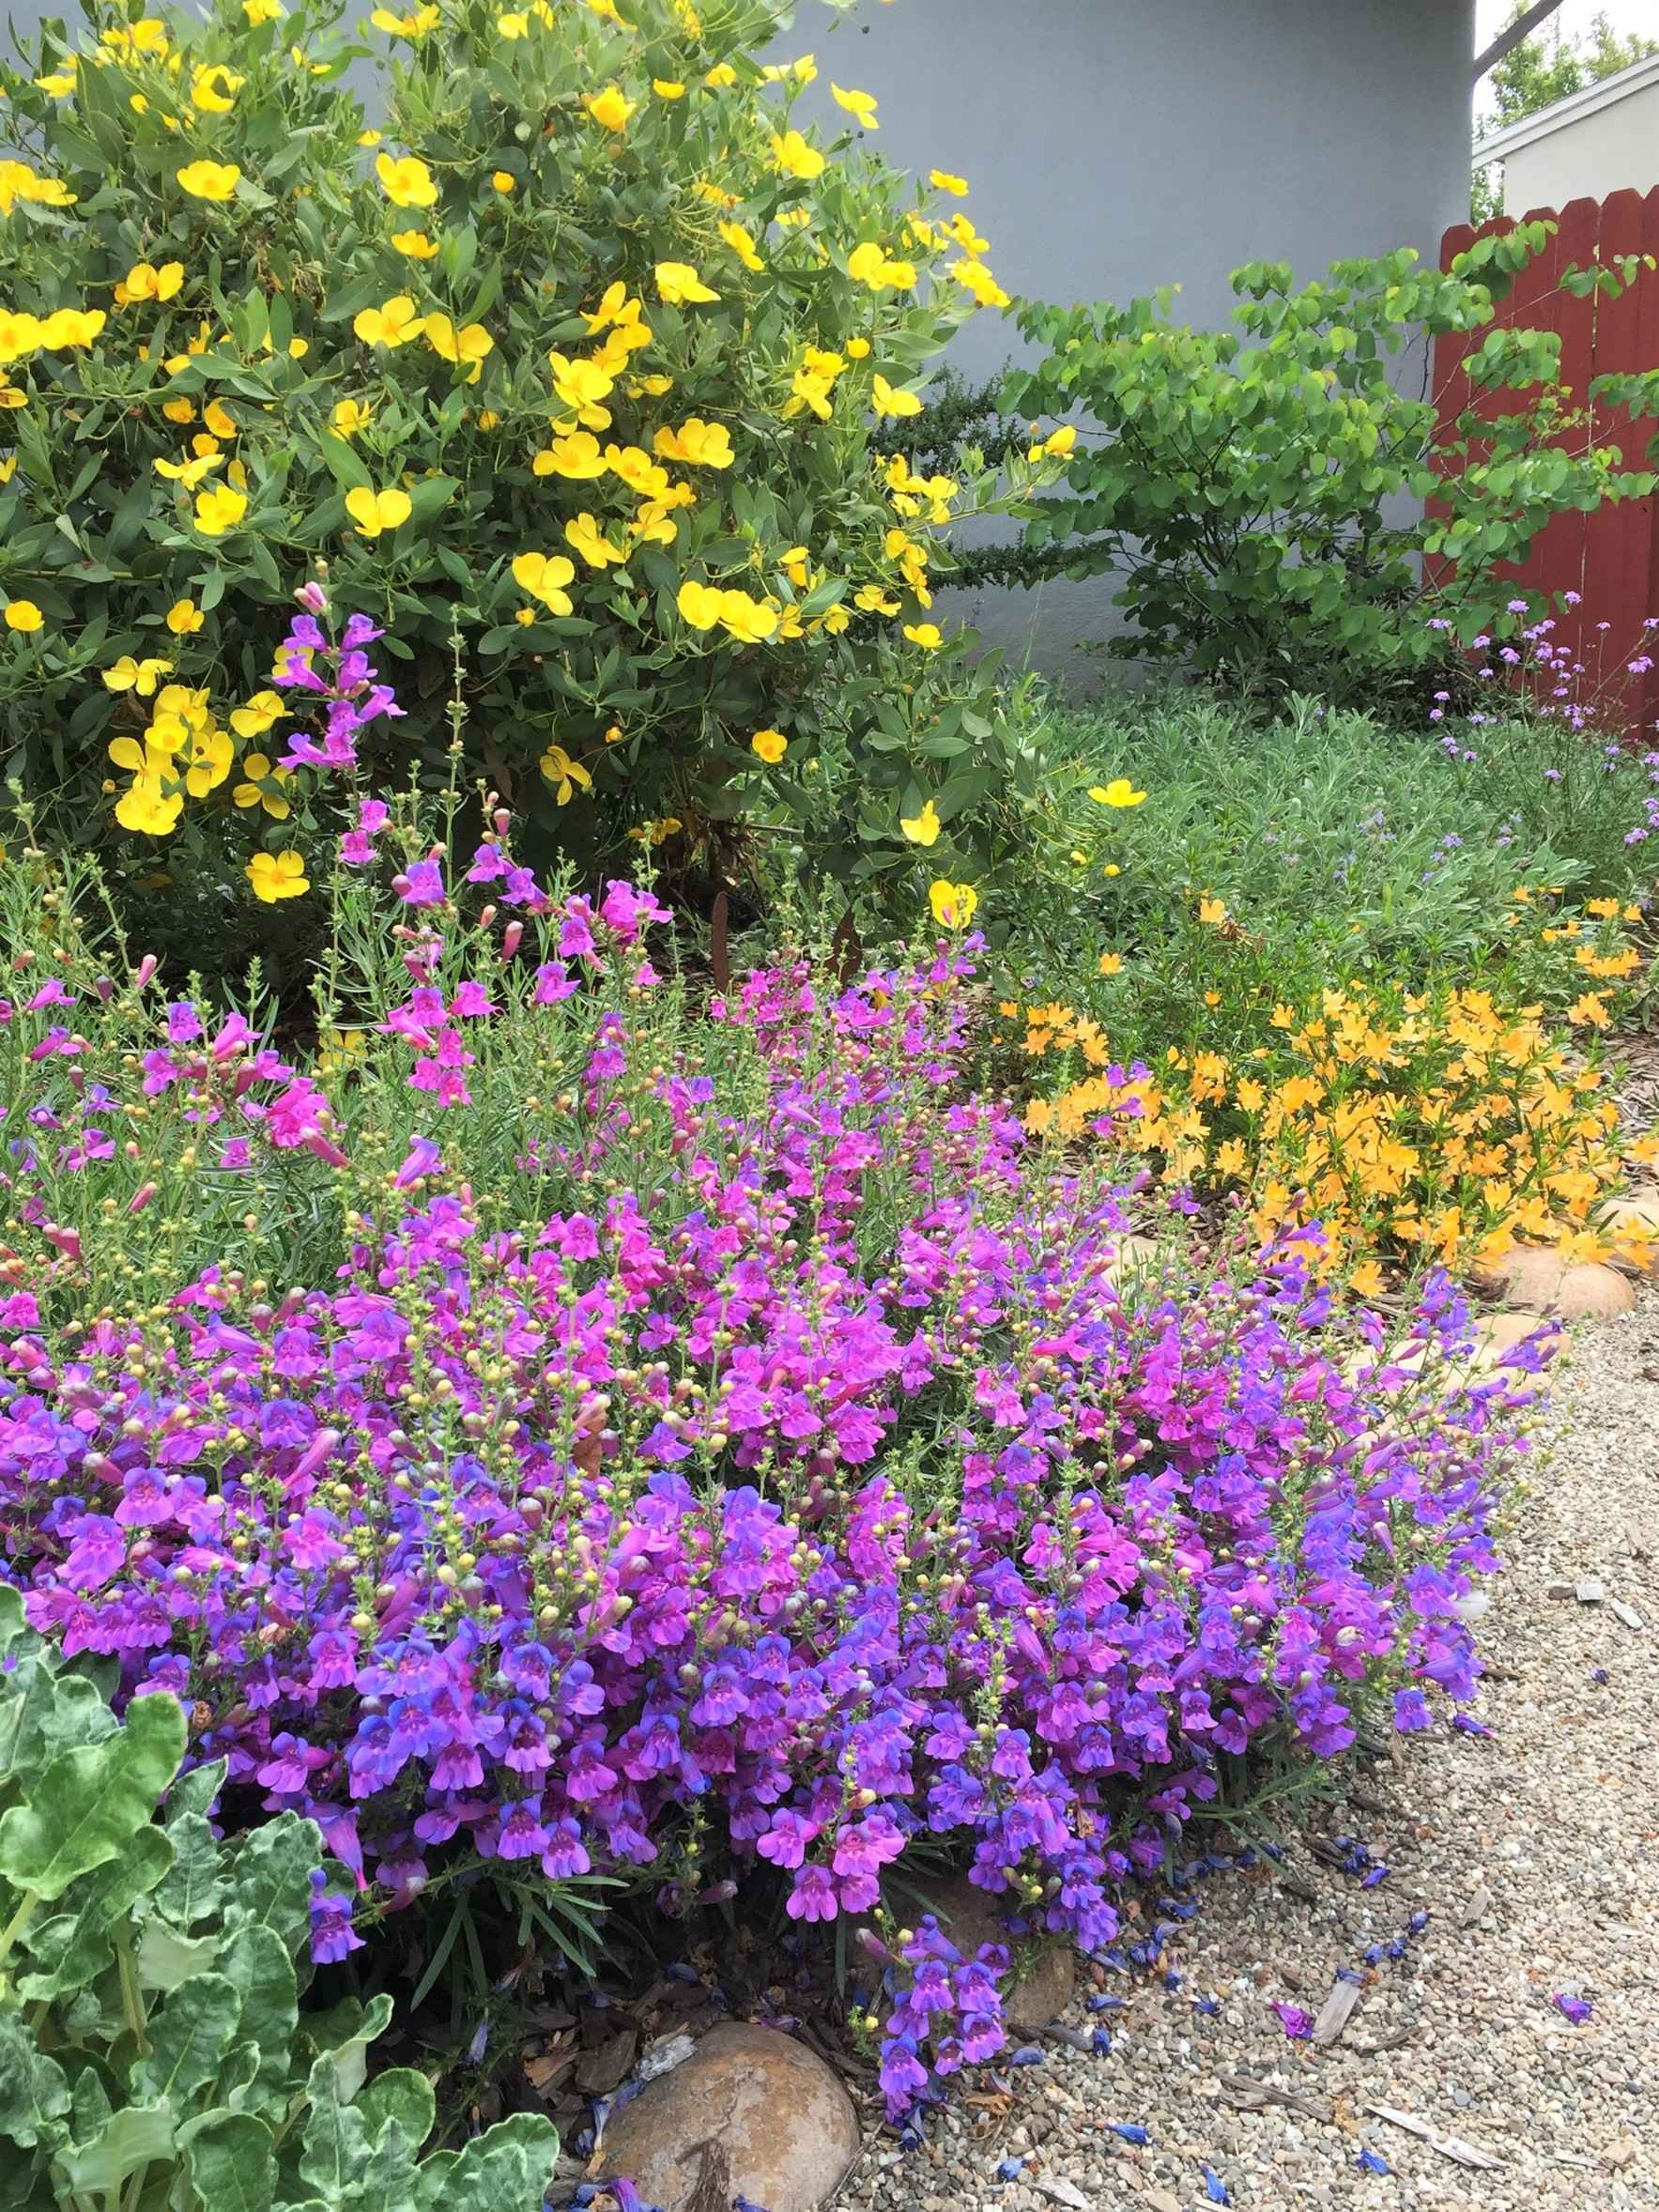 Grow Native Plant Sale and Workshop - Oct 25, 2019 image